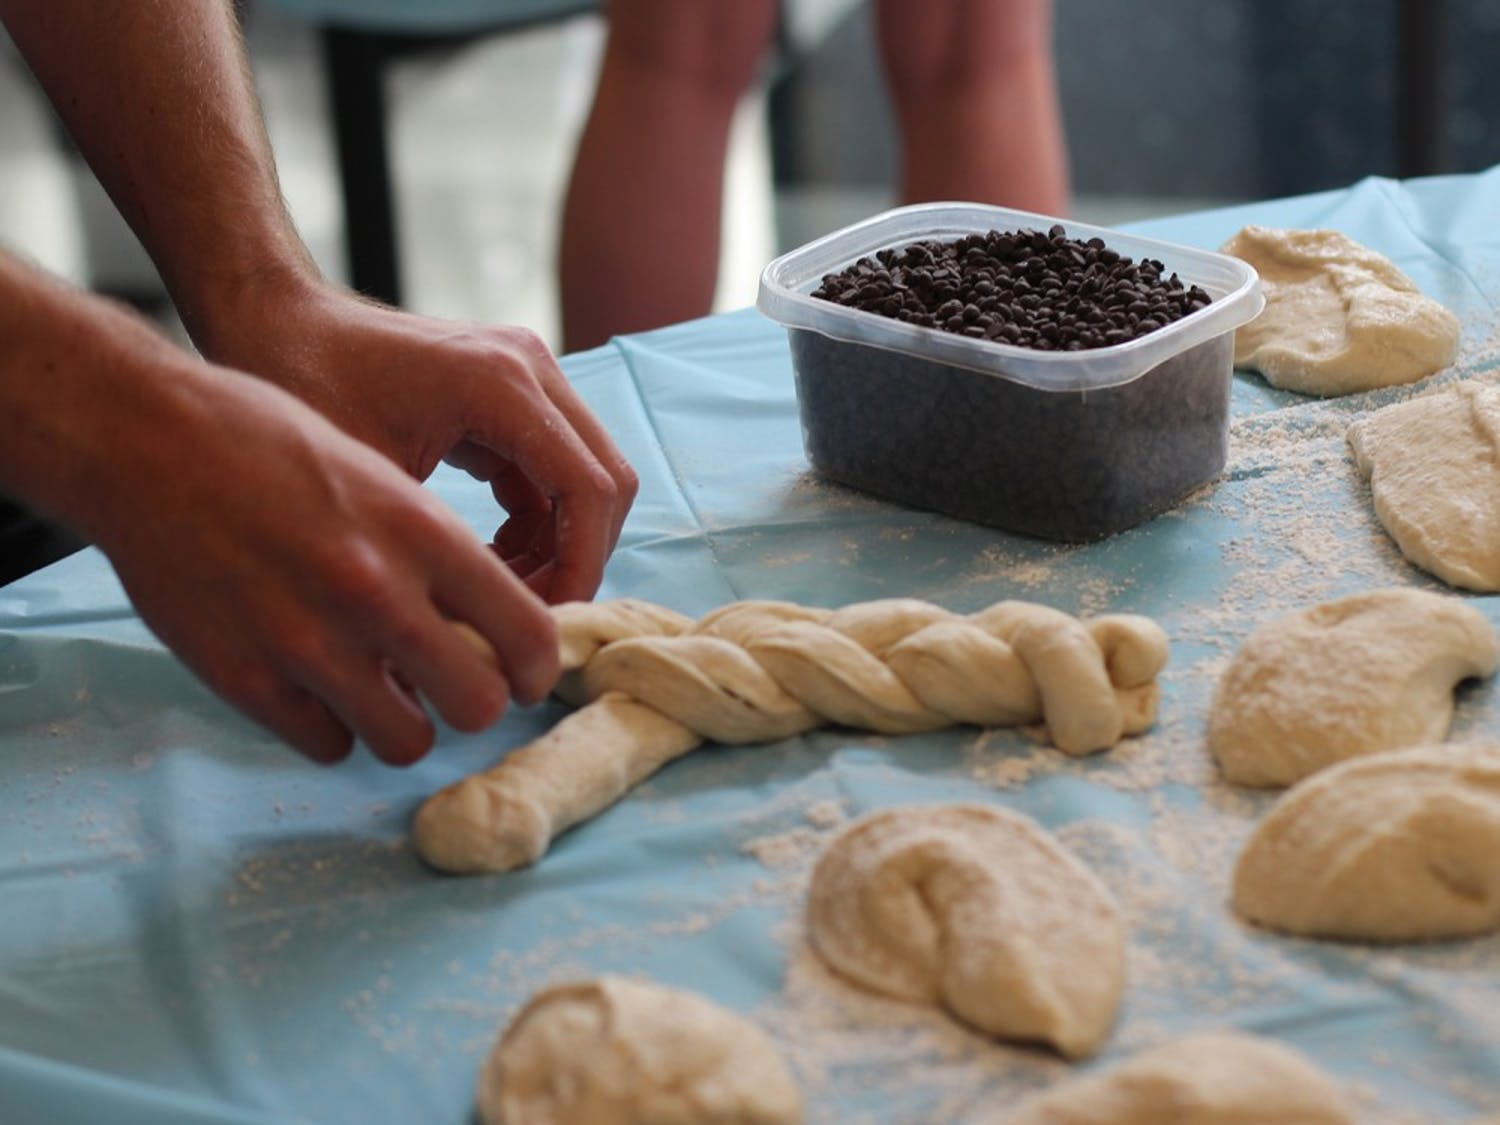 Students weave dough for the Challah for Hunger bake sale. Challah is a traditional Jewish bread eaten on Sabbath and holidays.